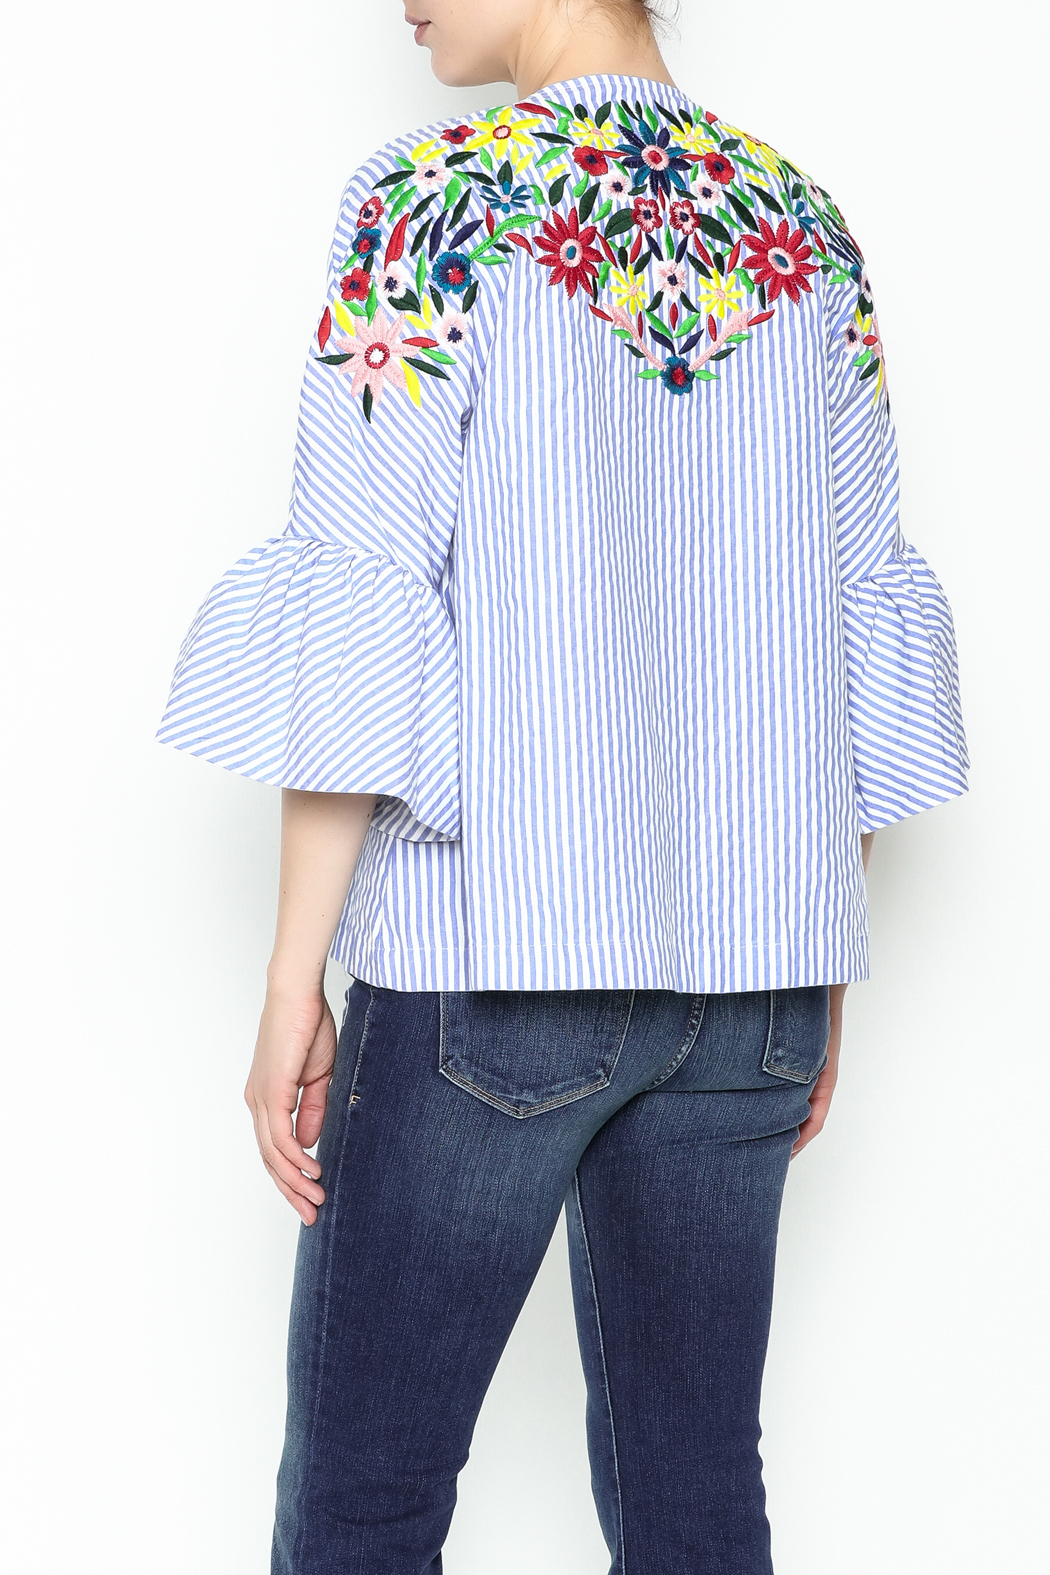 Fashion Pickle Ferera Embroidered Blouse - Back Cropped Image